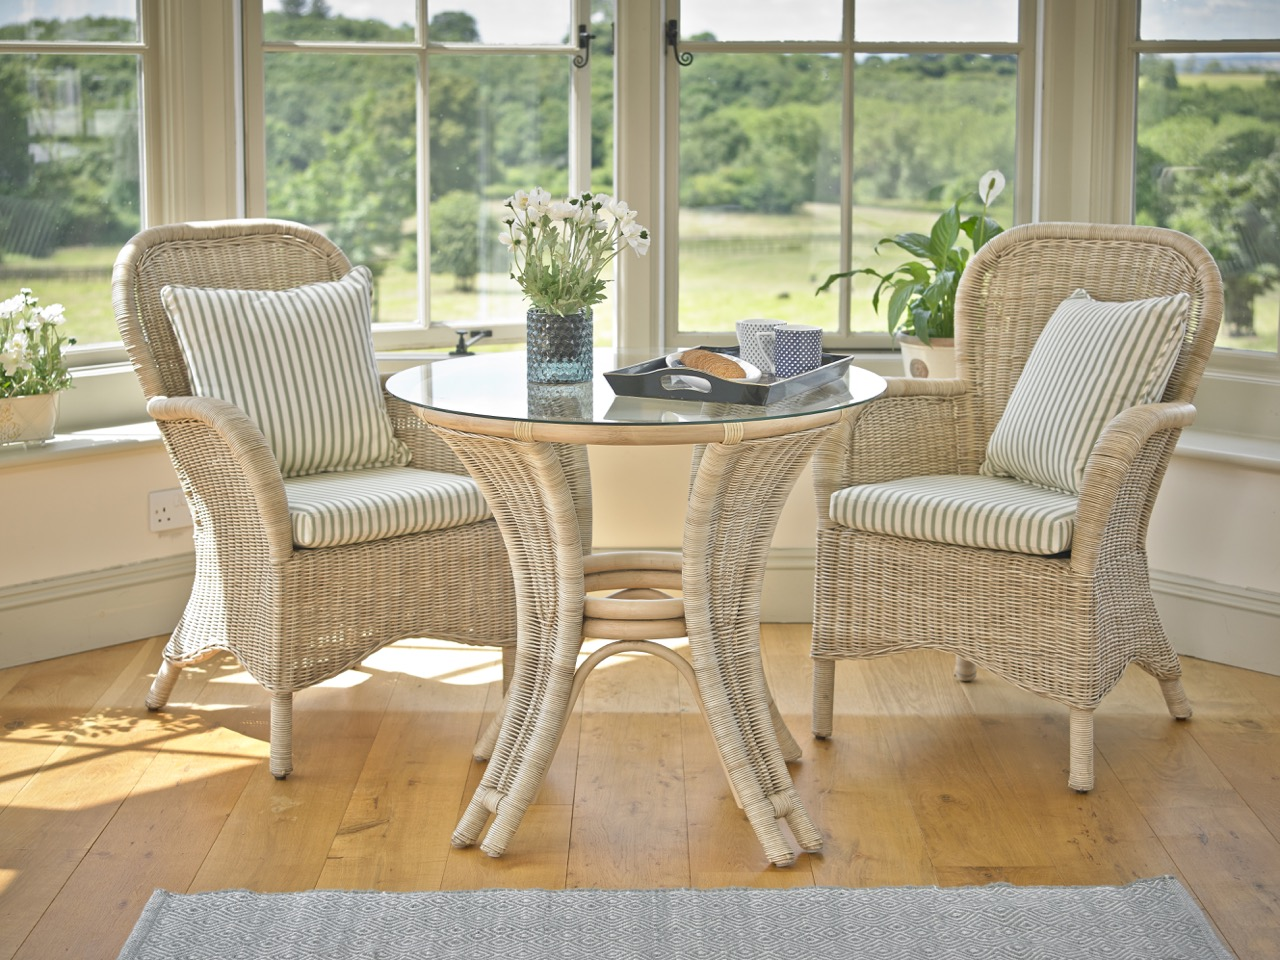 Small & Lightweight Tables & Chairs - Small Conservatory Ideas for 2020